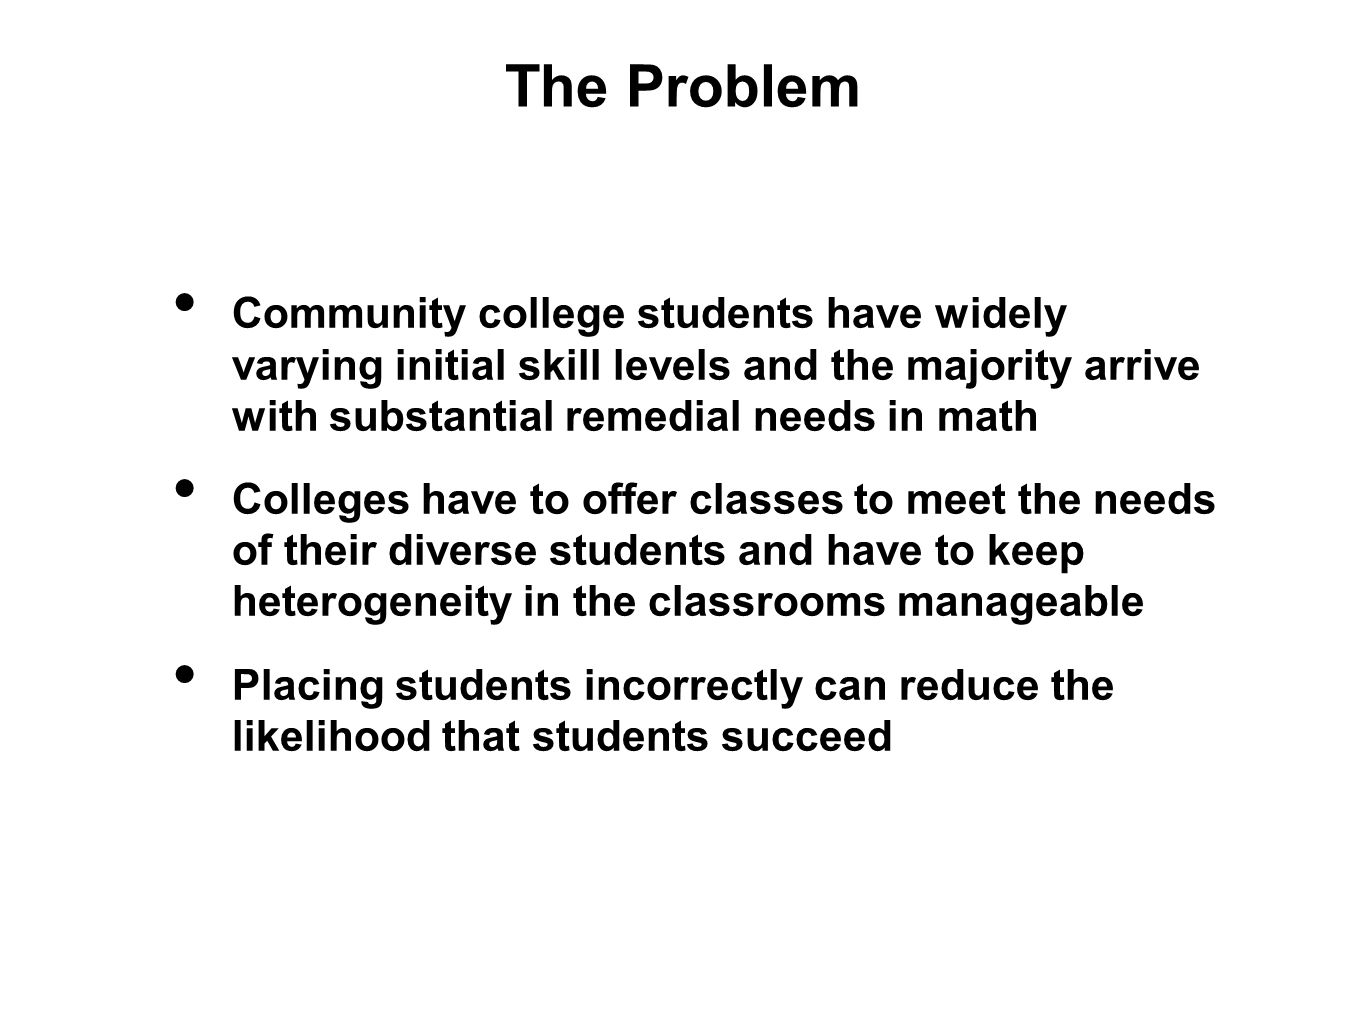 The Problem Community college students have widely varying initial skill levels and the majority arrive with substantial remedial needs in math Colleg